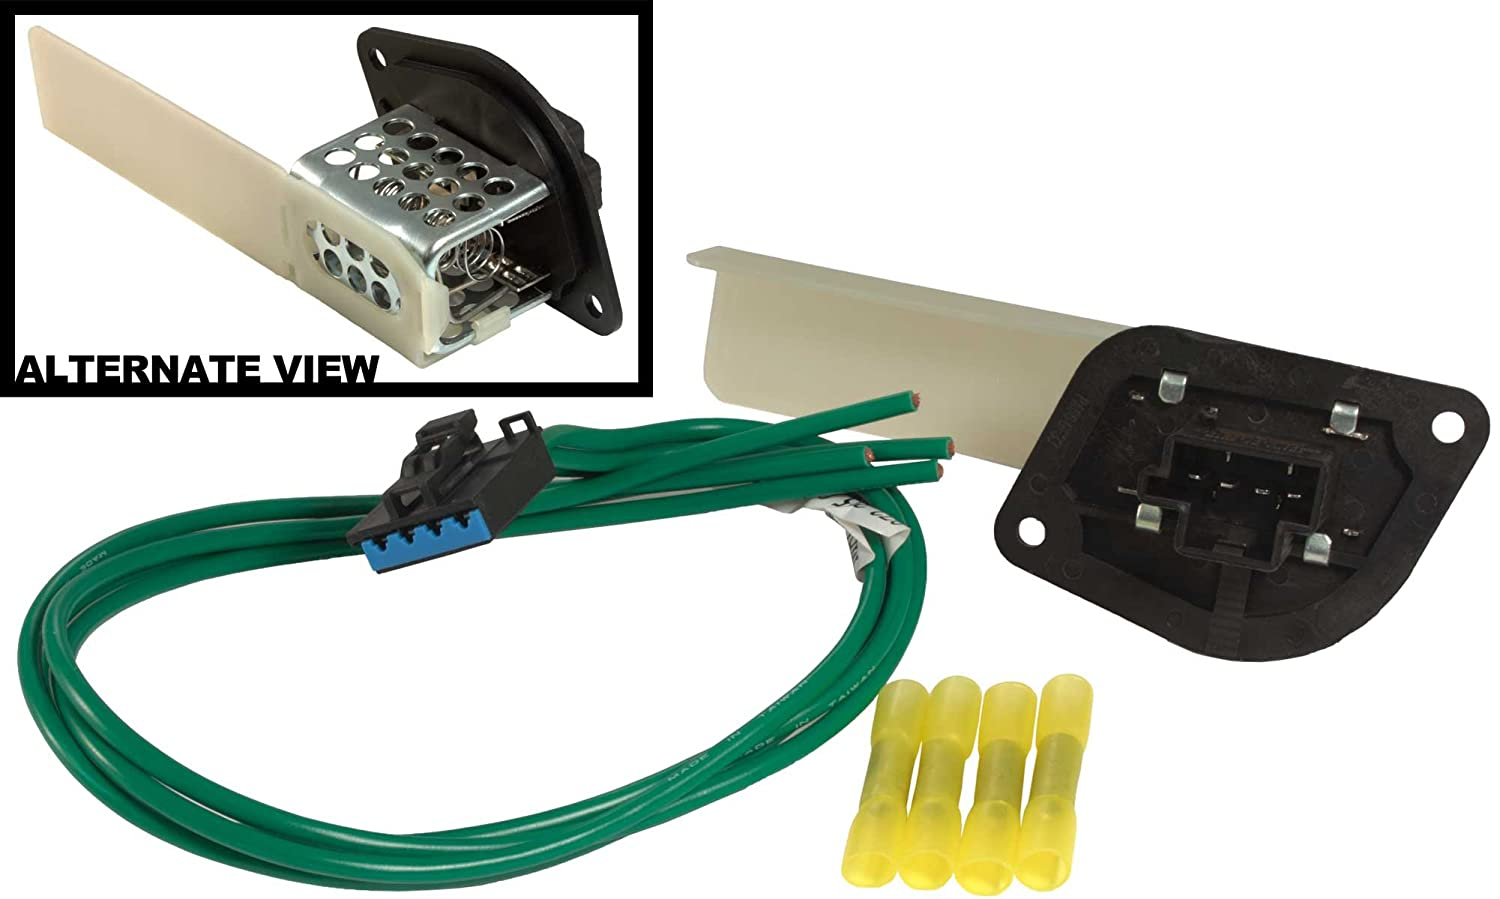 71rTppQ3FwL._SL1500_ amazon com apdty 084527 blower motor resistor kit with wiring jeep wrangler blower motor wiring harness at creativeand.co